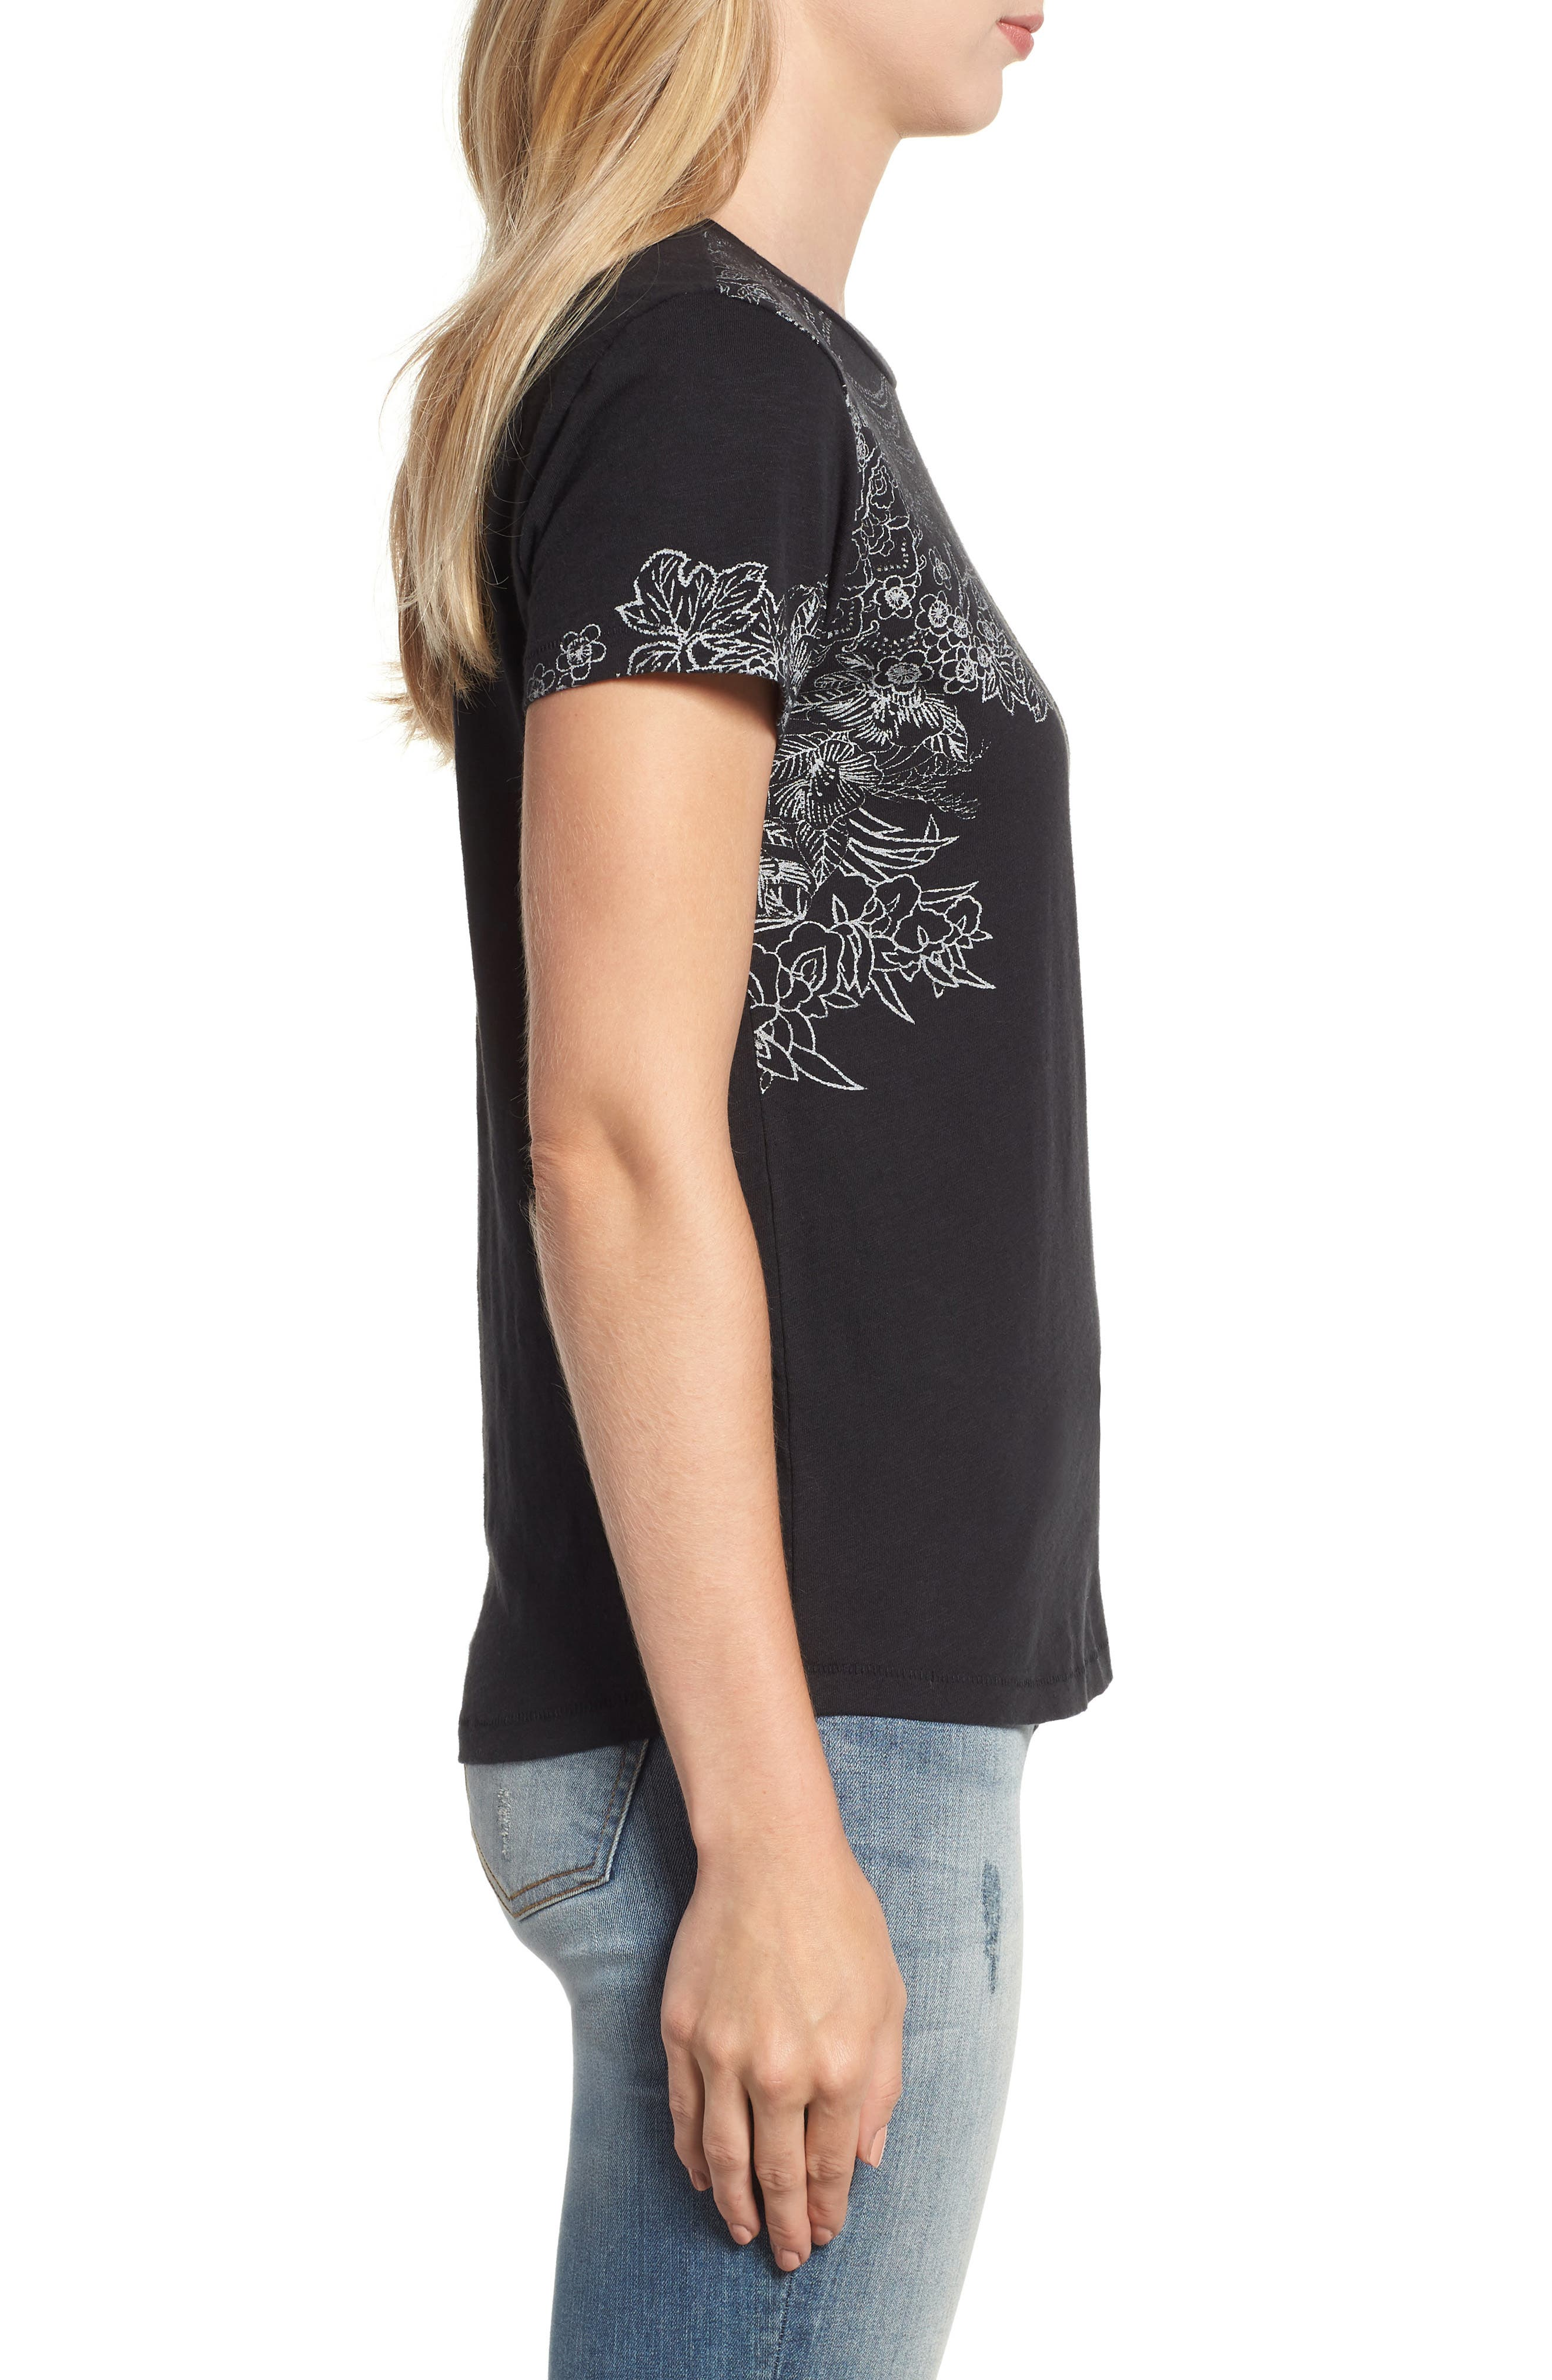 LUCKY BRAND,                             Embroidered Tee,                             Alternate thumbnail 3, color,                             001